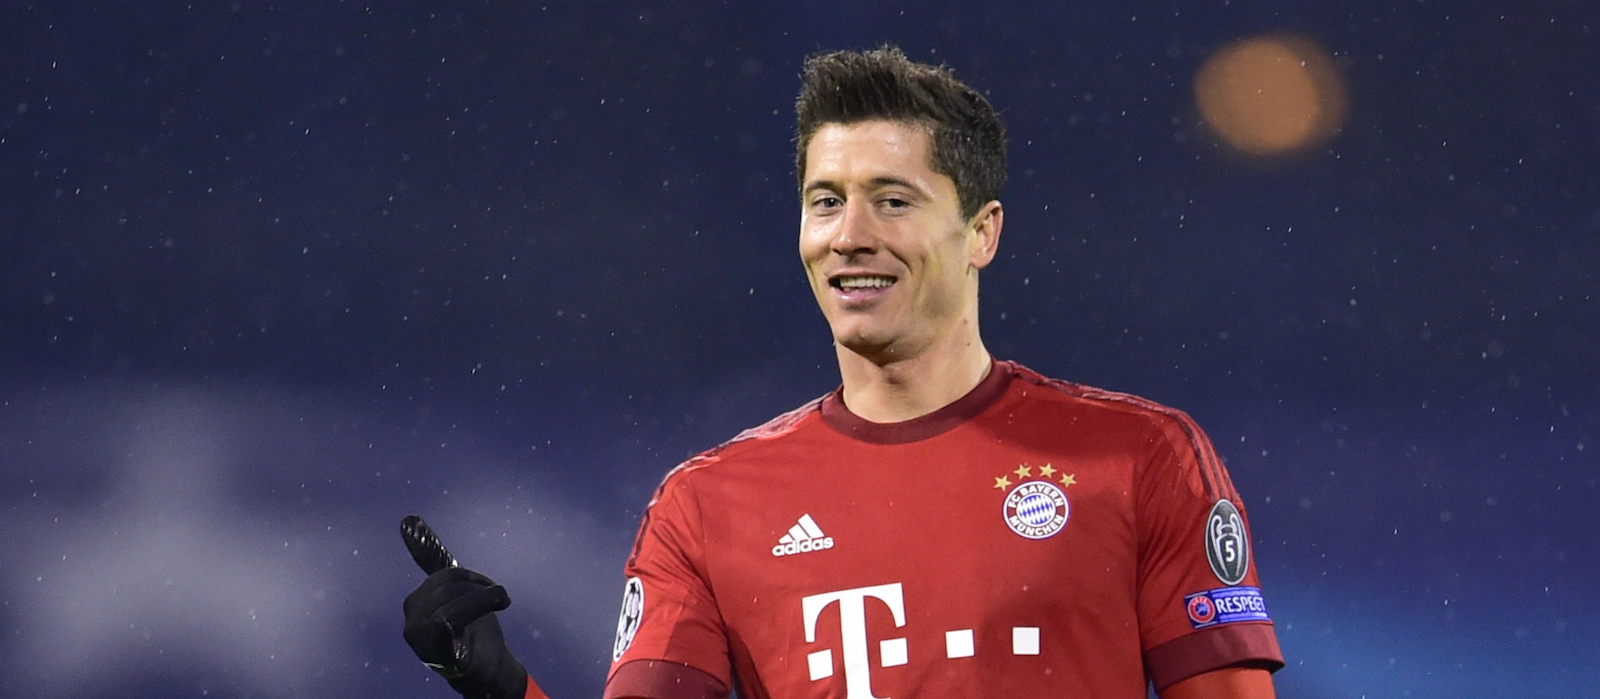 Lewandowski discusses potential Bayern Munich exit and Mourinho